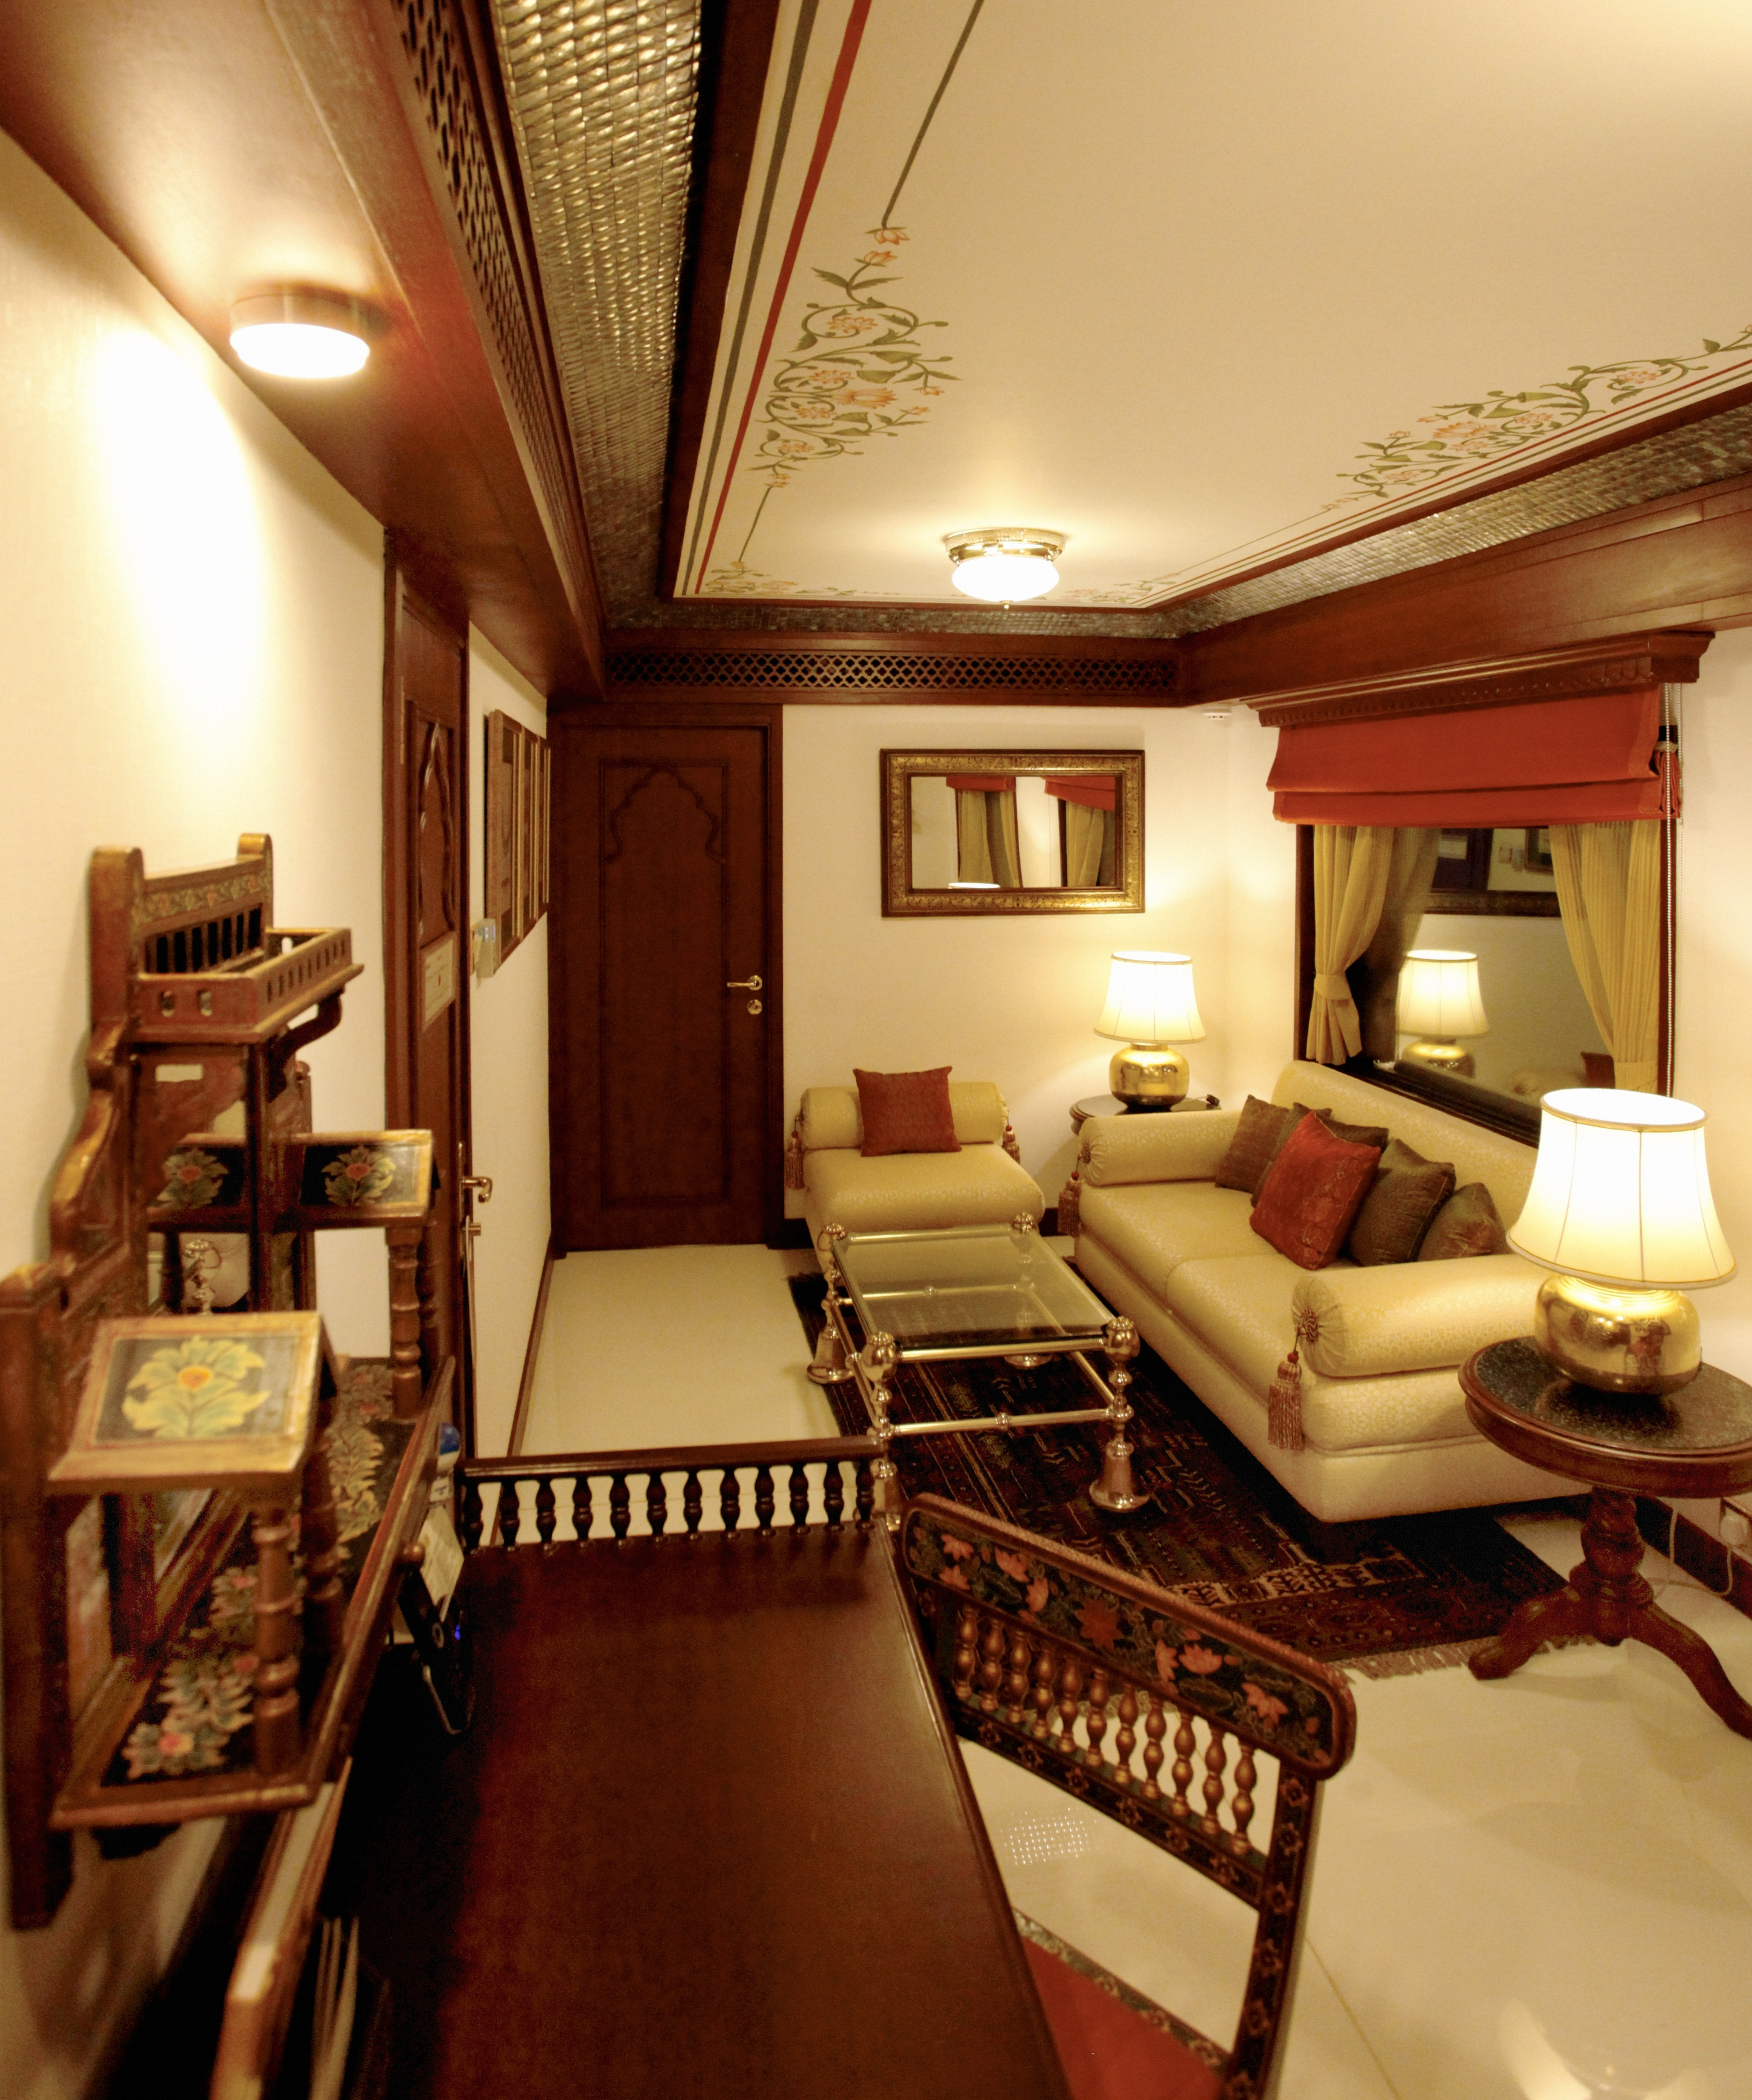 Royal accommodations on the maharajas express palace tours for Sitting room suites